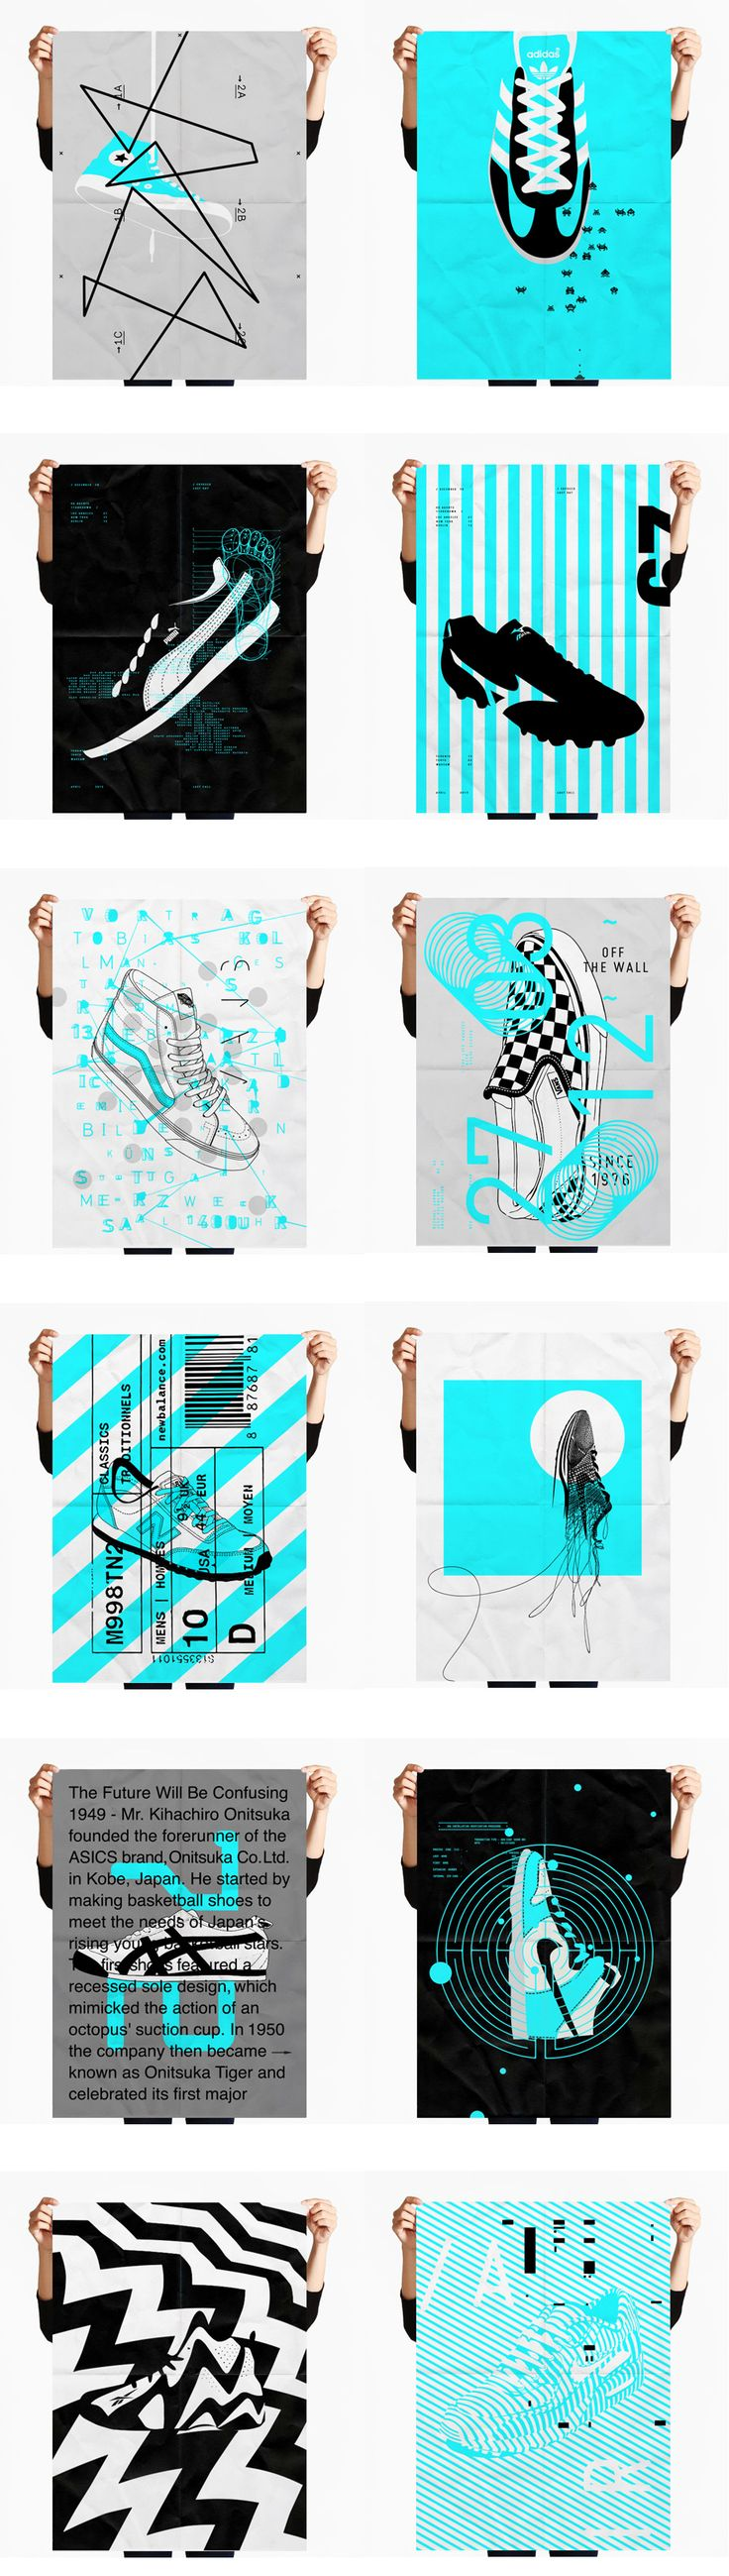 Poster design ideas for school projects - Personal Project Screen Printing Sneakers Poster Series